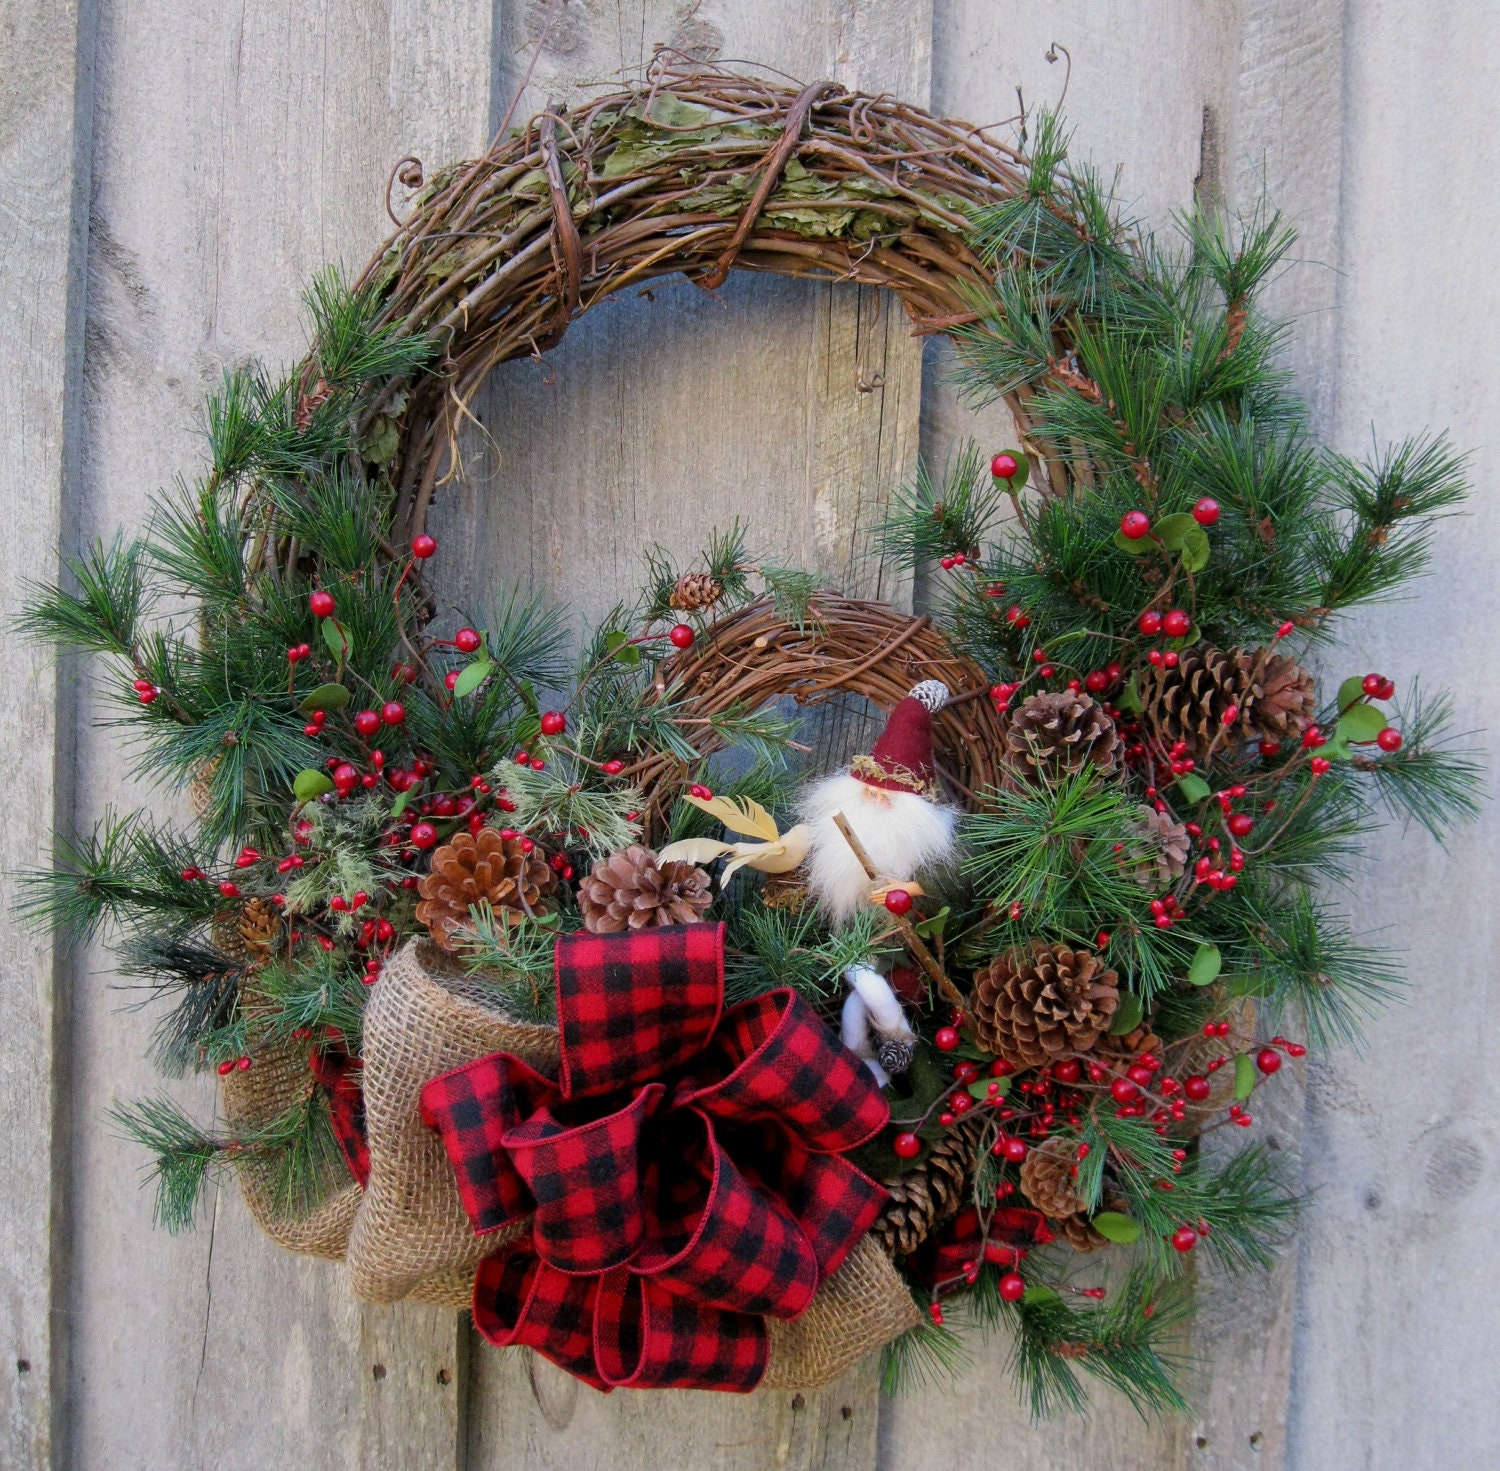 Christmas Wreath Holiday Décor Woodland Christmas Rustic